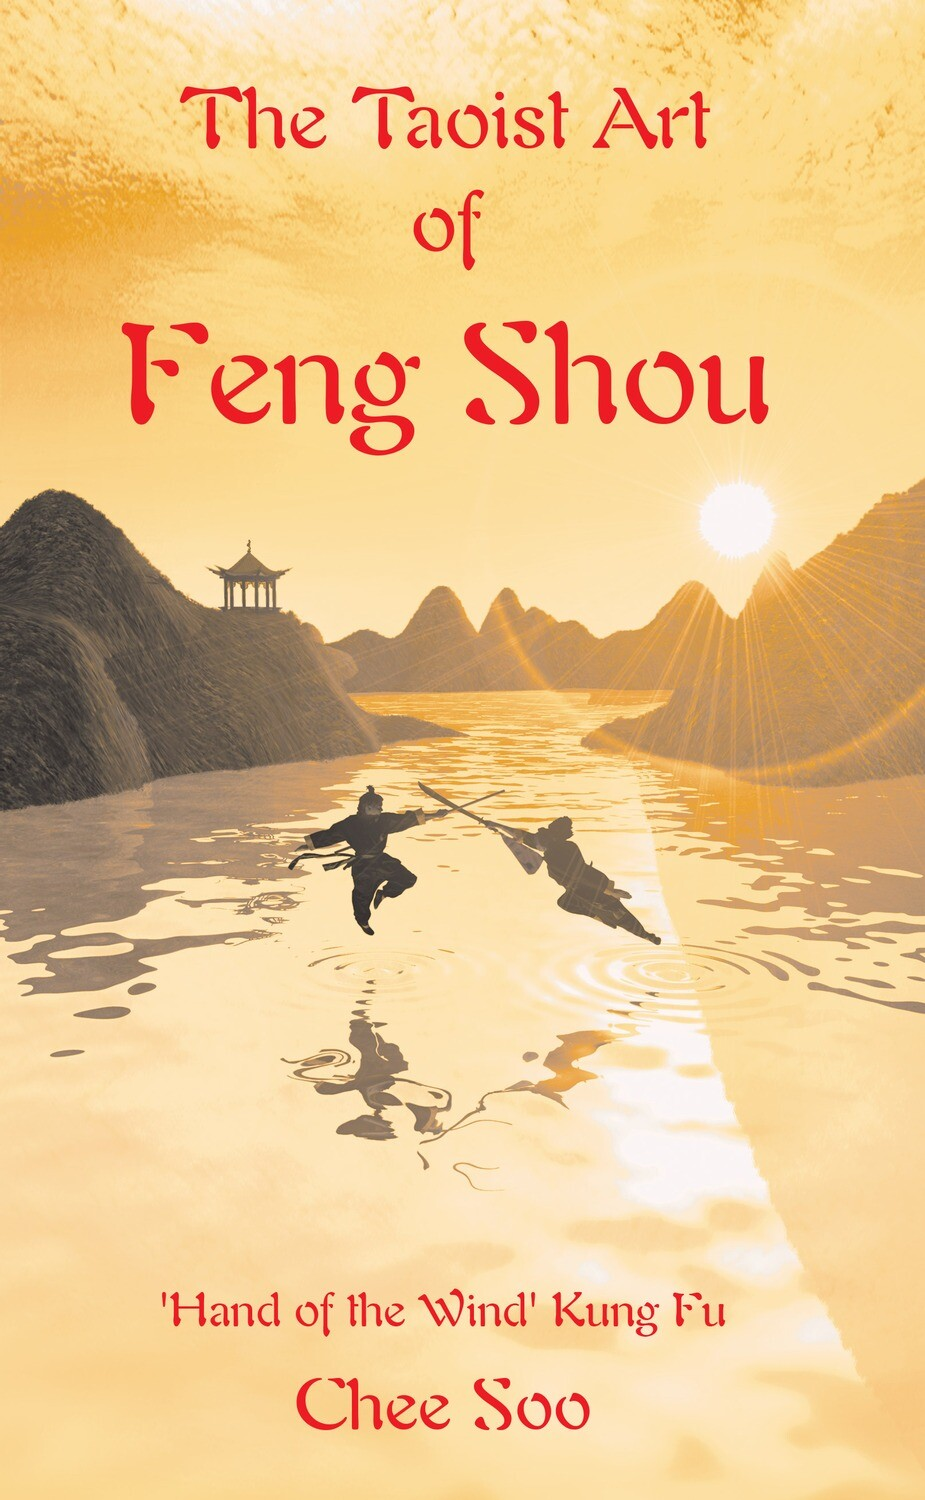 The Taoist Art of Feng Shou